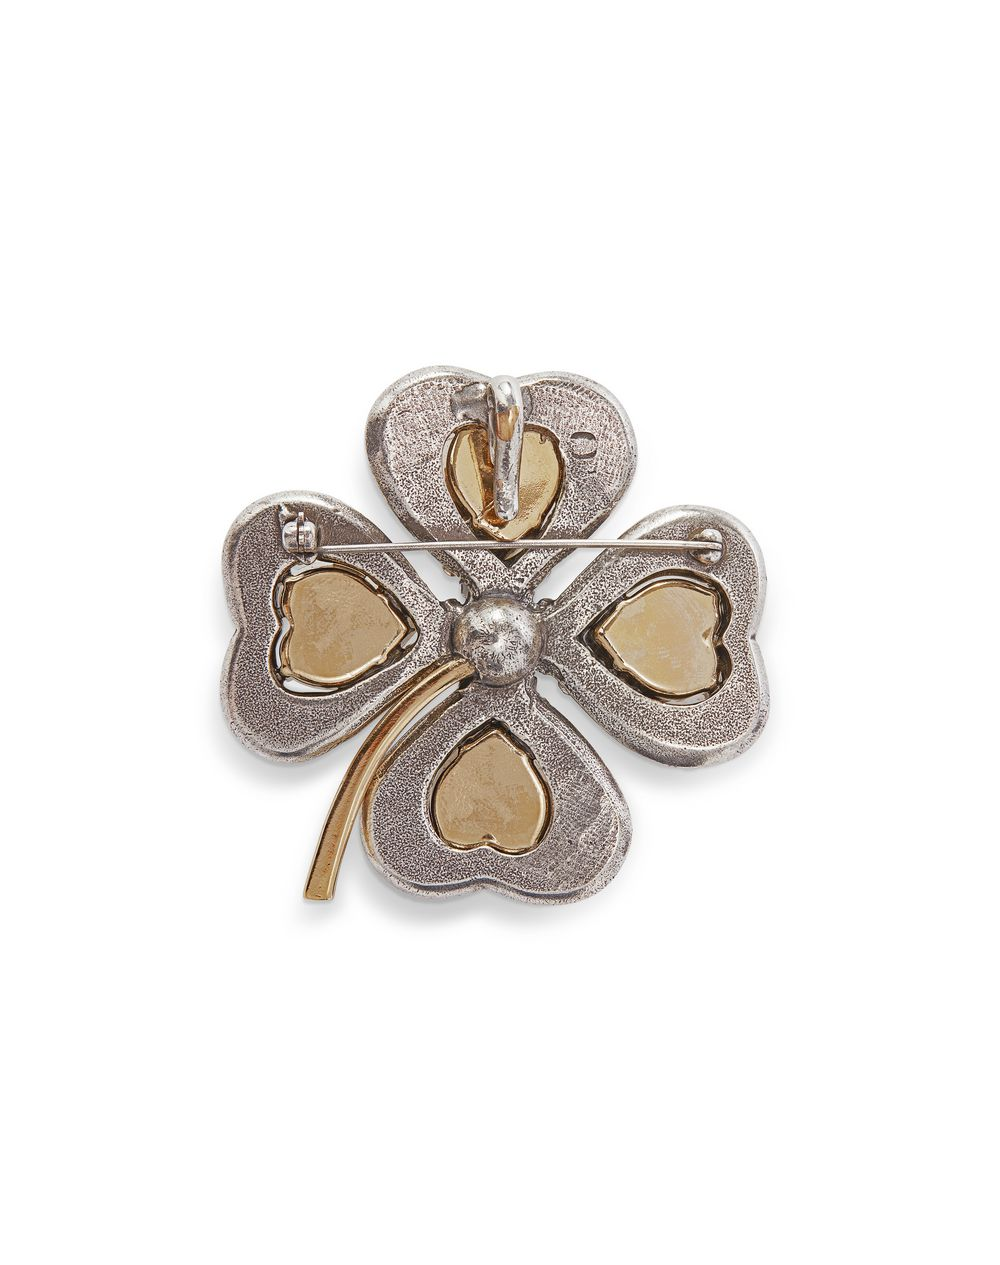 COSMIC CLOVER BROOCH/NECKLACE   - Lanvin